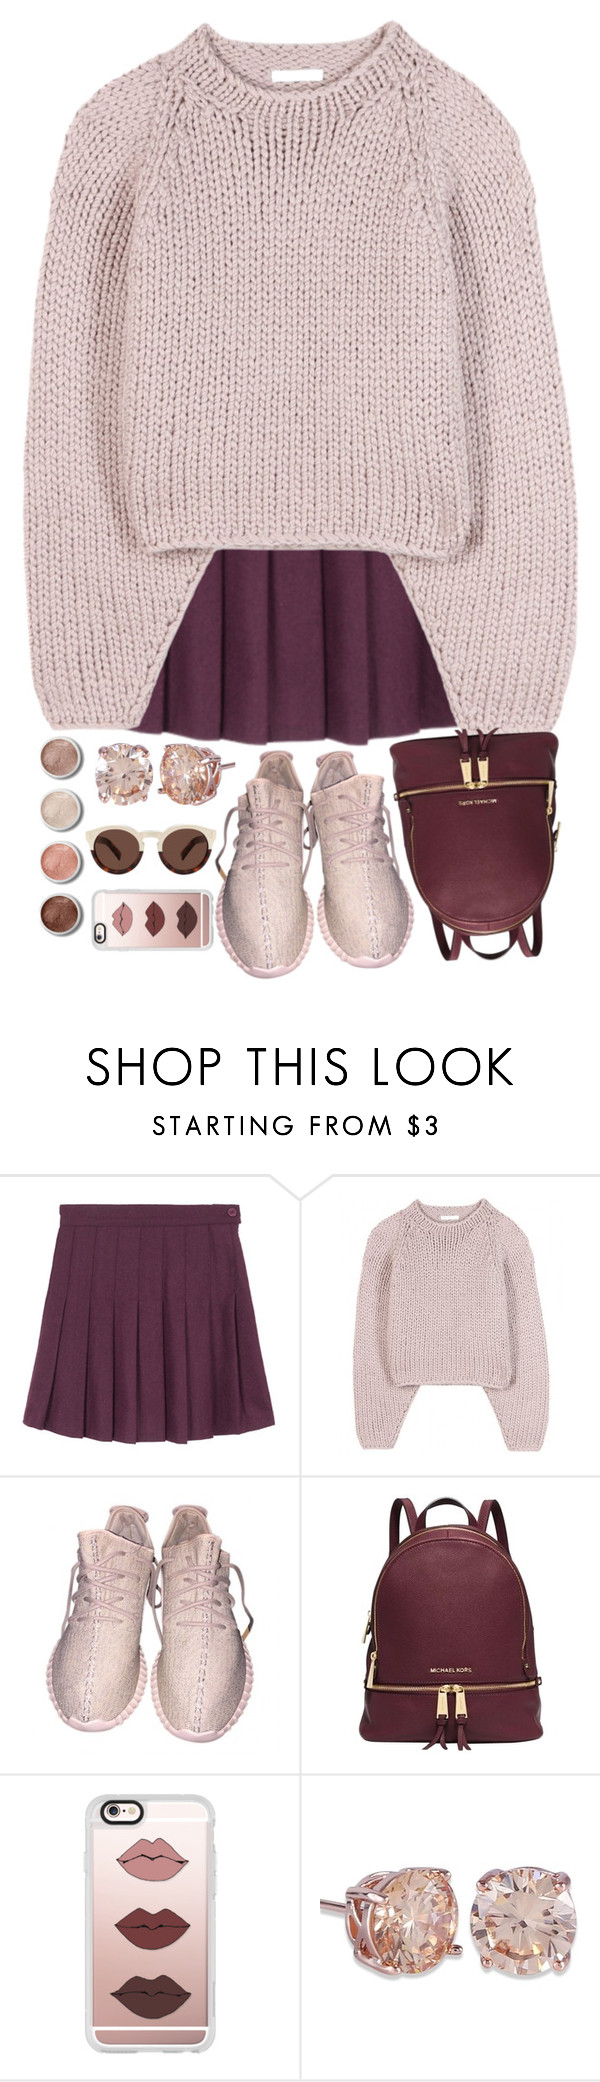 """""""Mama just killed a man"""" by shayscof ❤ liked on Polyvore featuring Chloé, Michael Kors, Casetify, Terre Mère and Illesteva"""